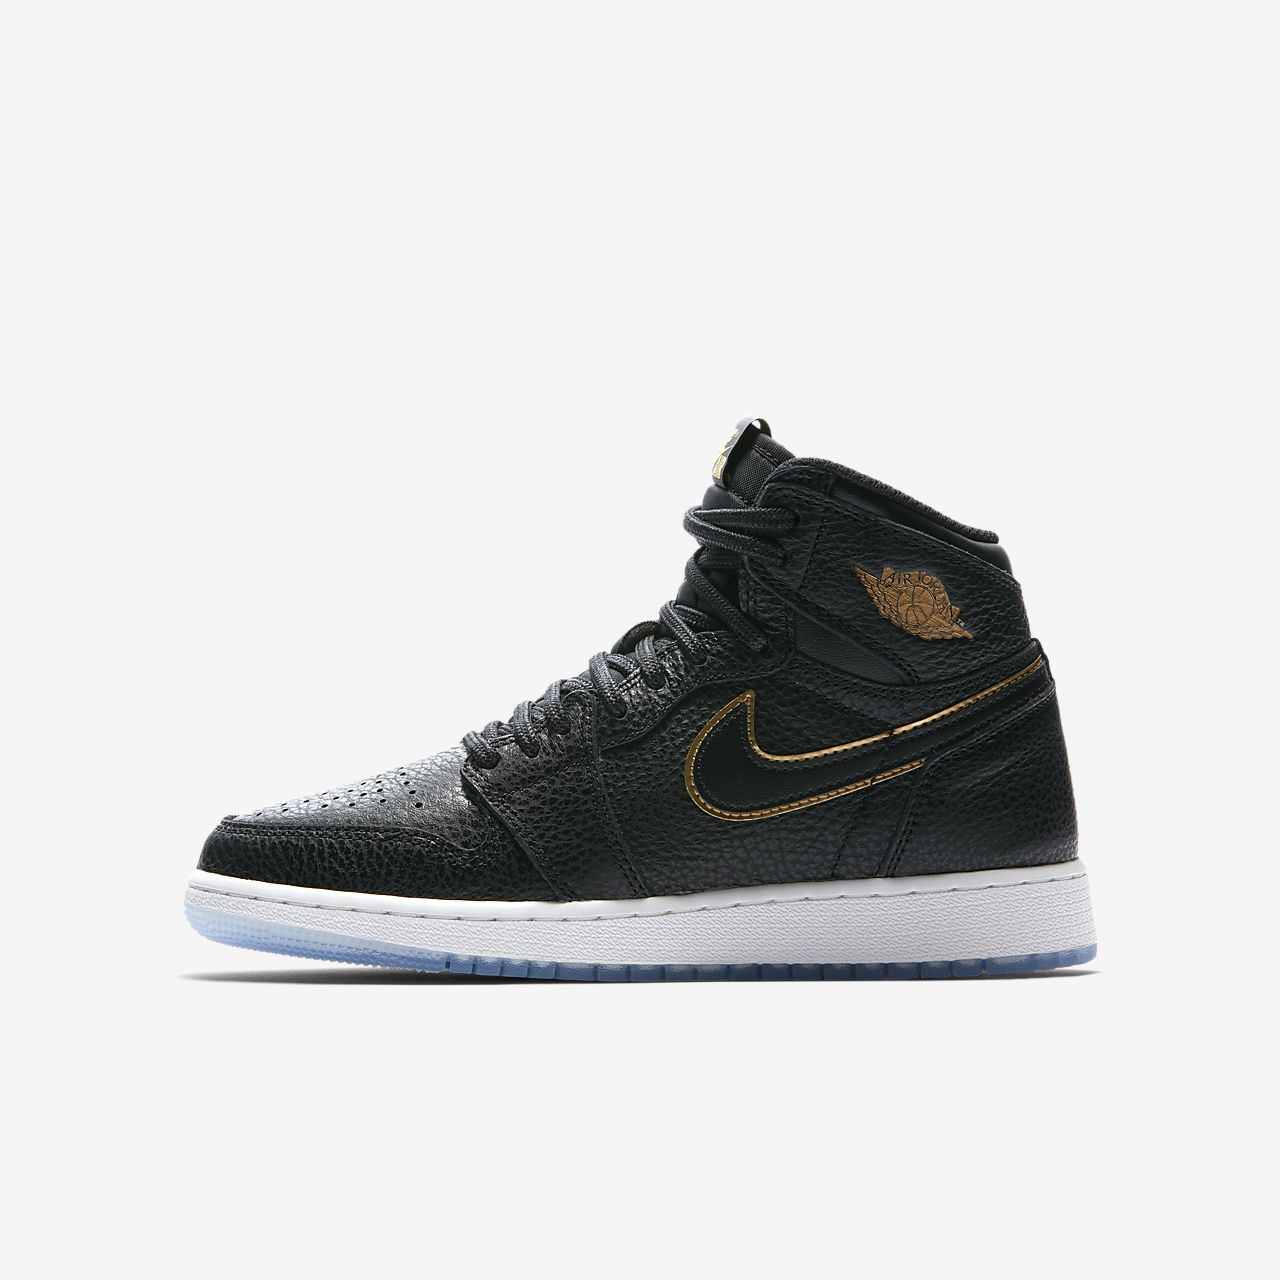 nike air jordan retro 1 nz